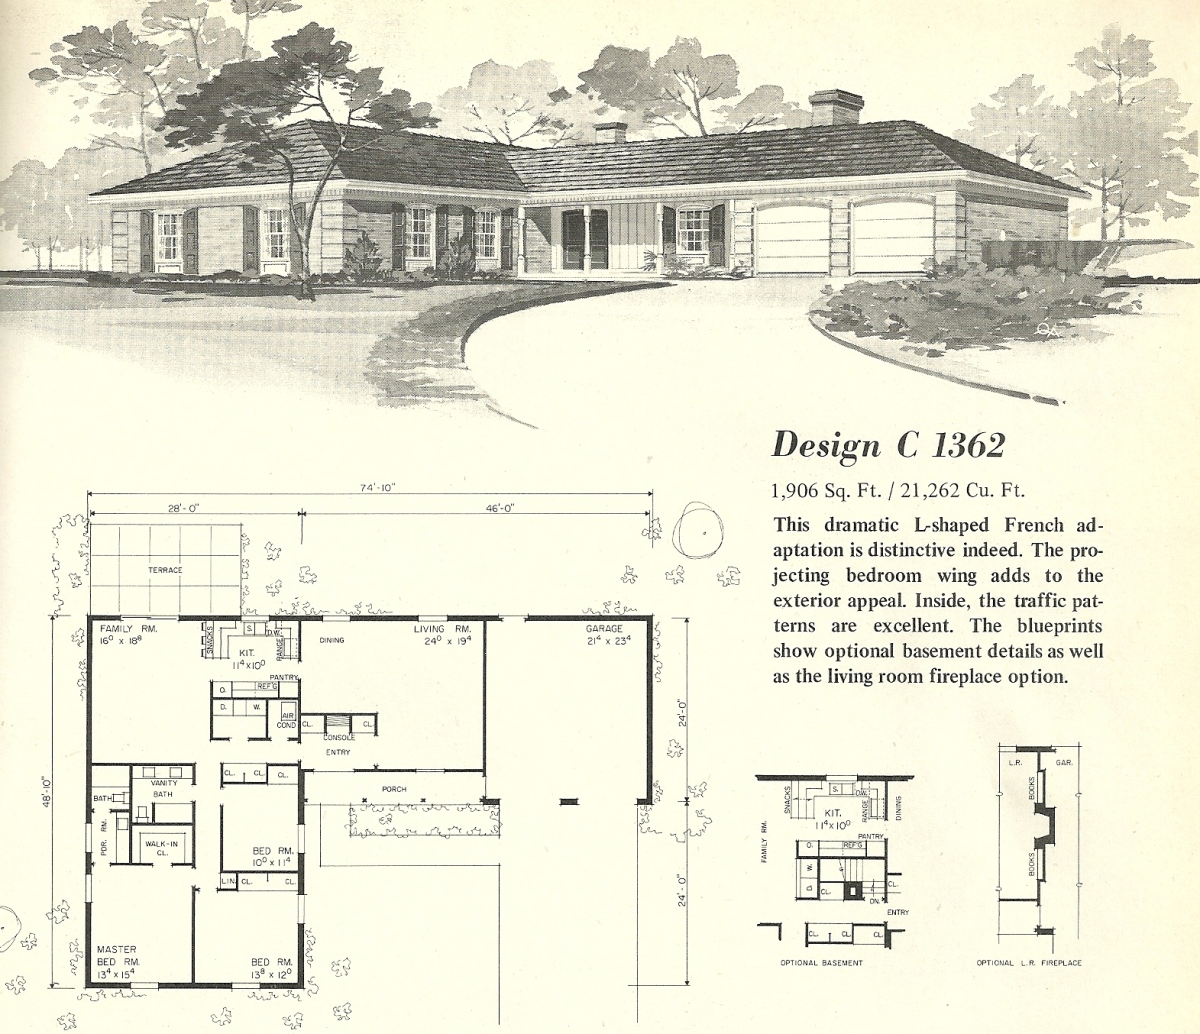 Vintage house plans 1362 antique alter ego for Mid century home plans